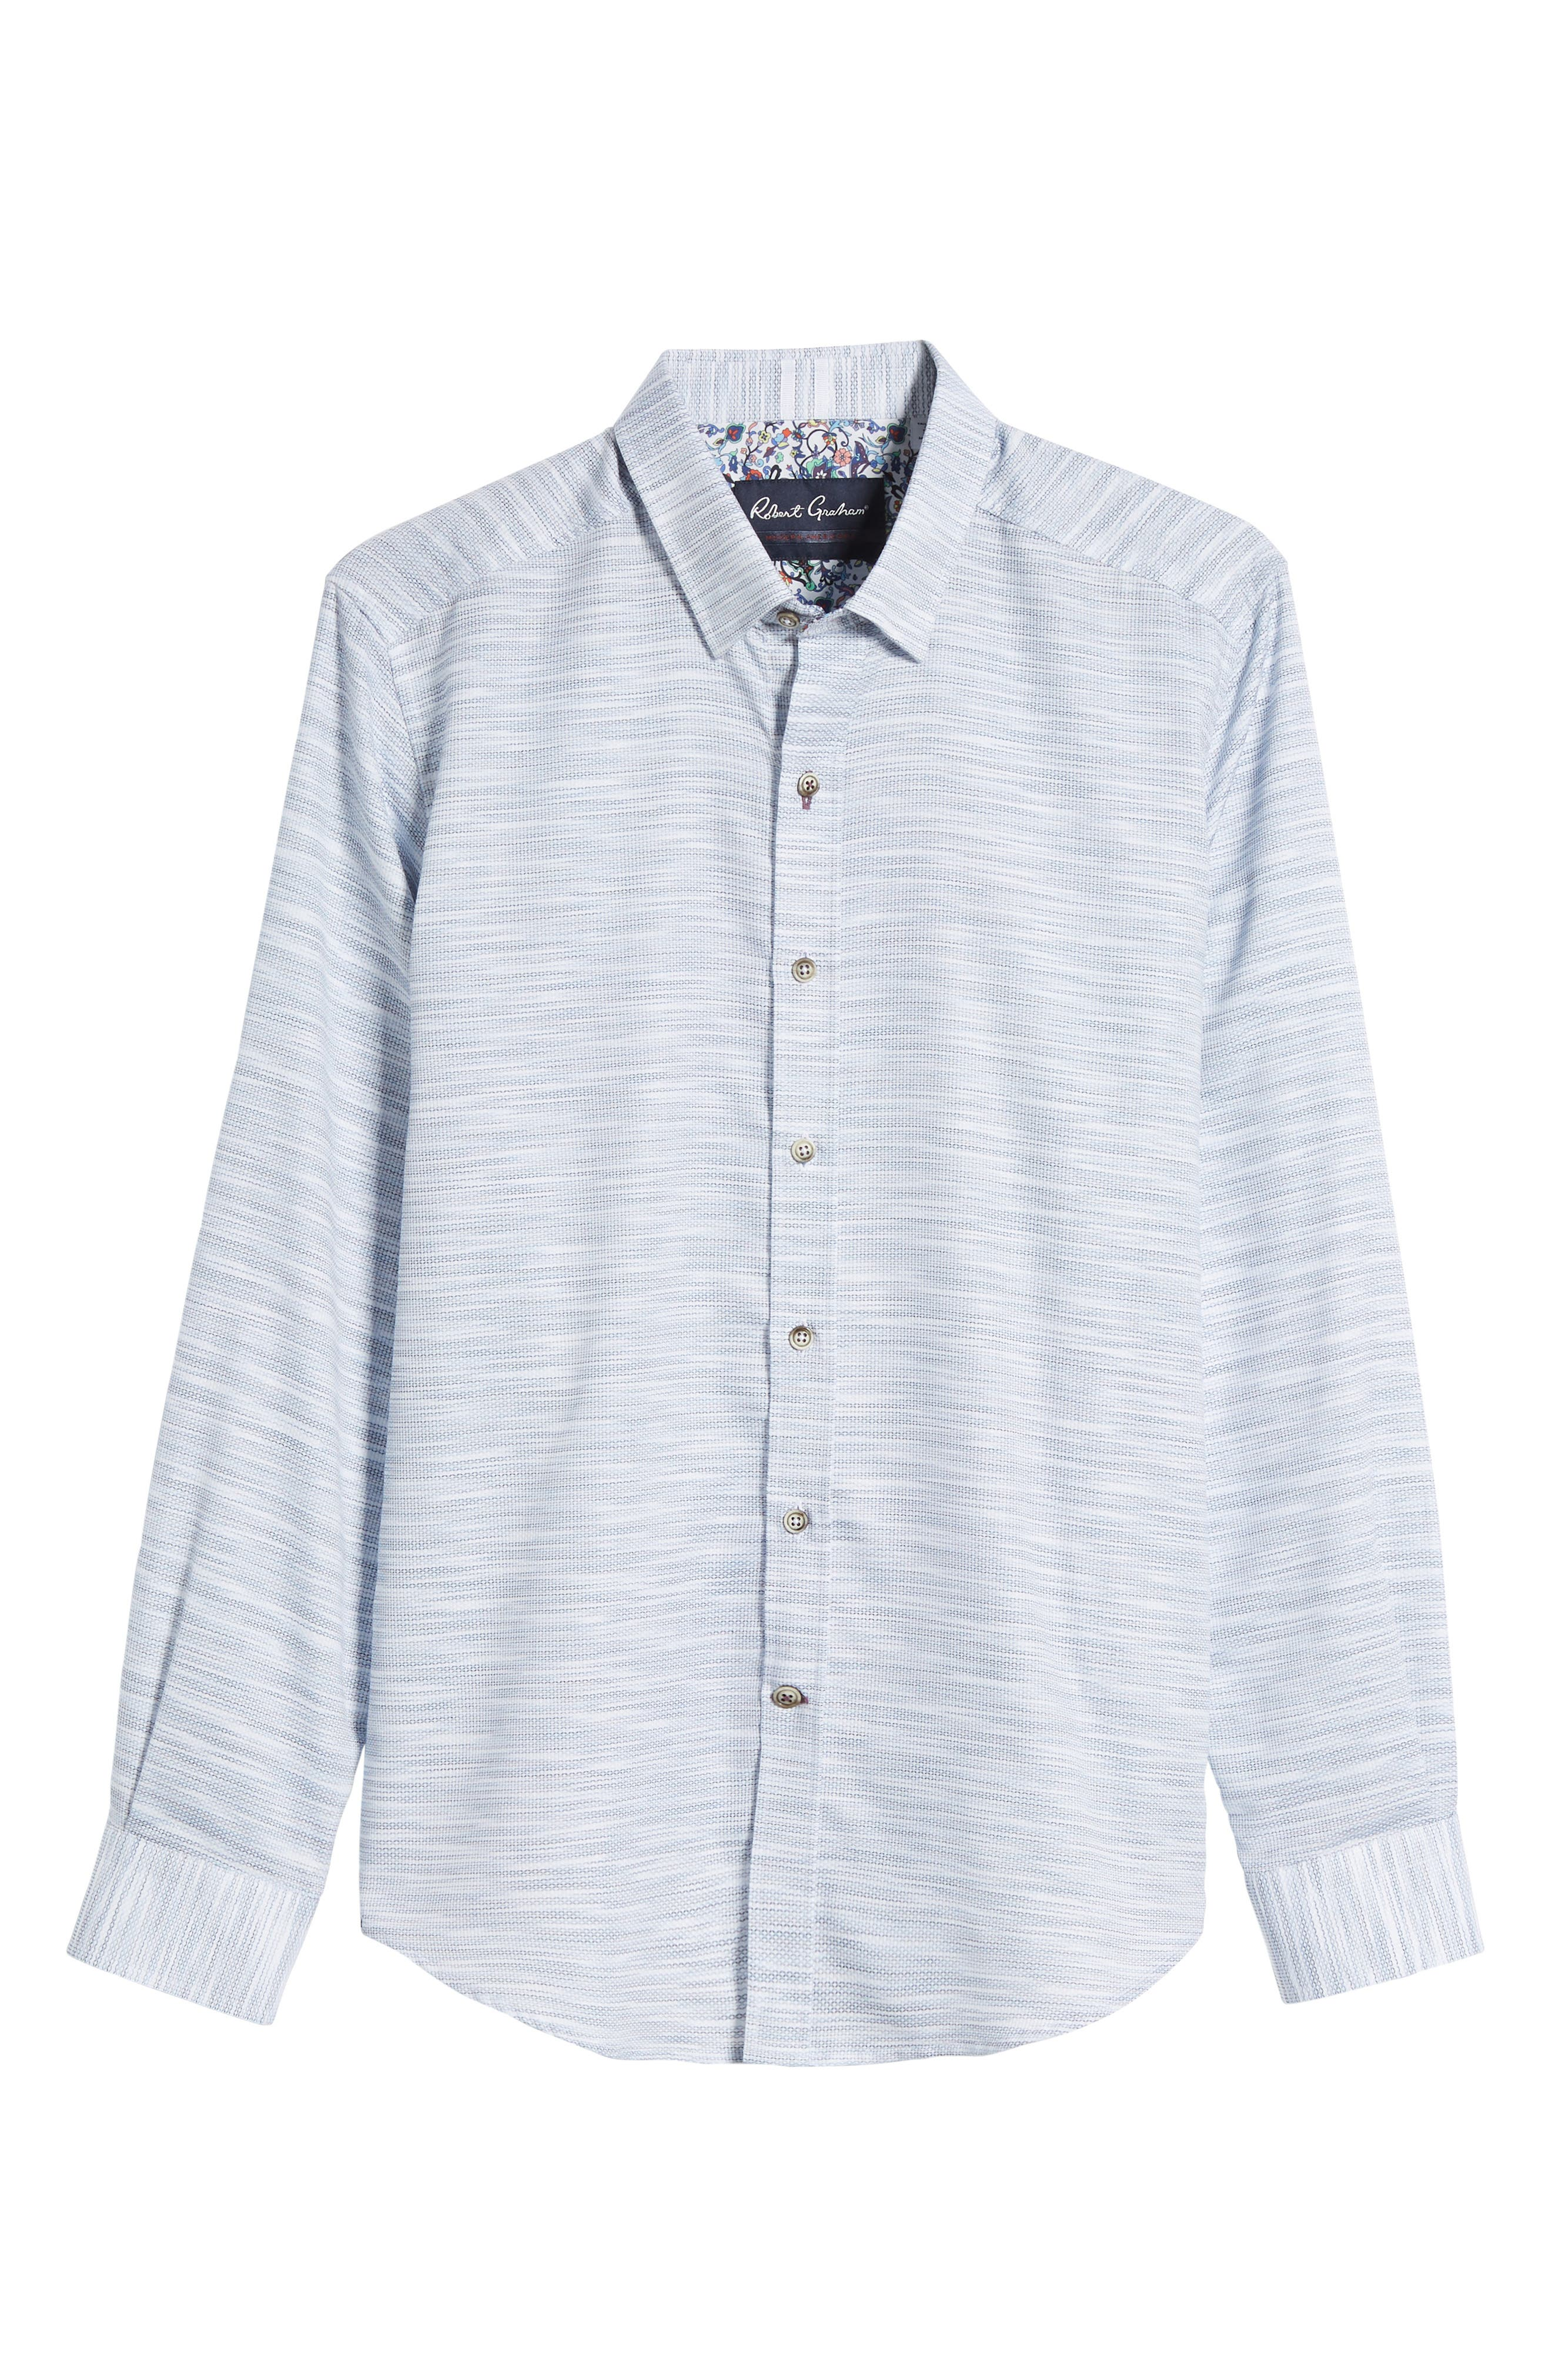 Tully Tailored Fit Sport Shirt,                             Alternate thumbnail 6, color,                             WHITE